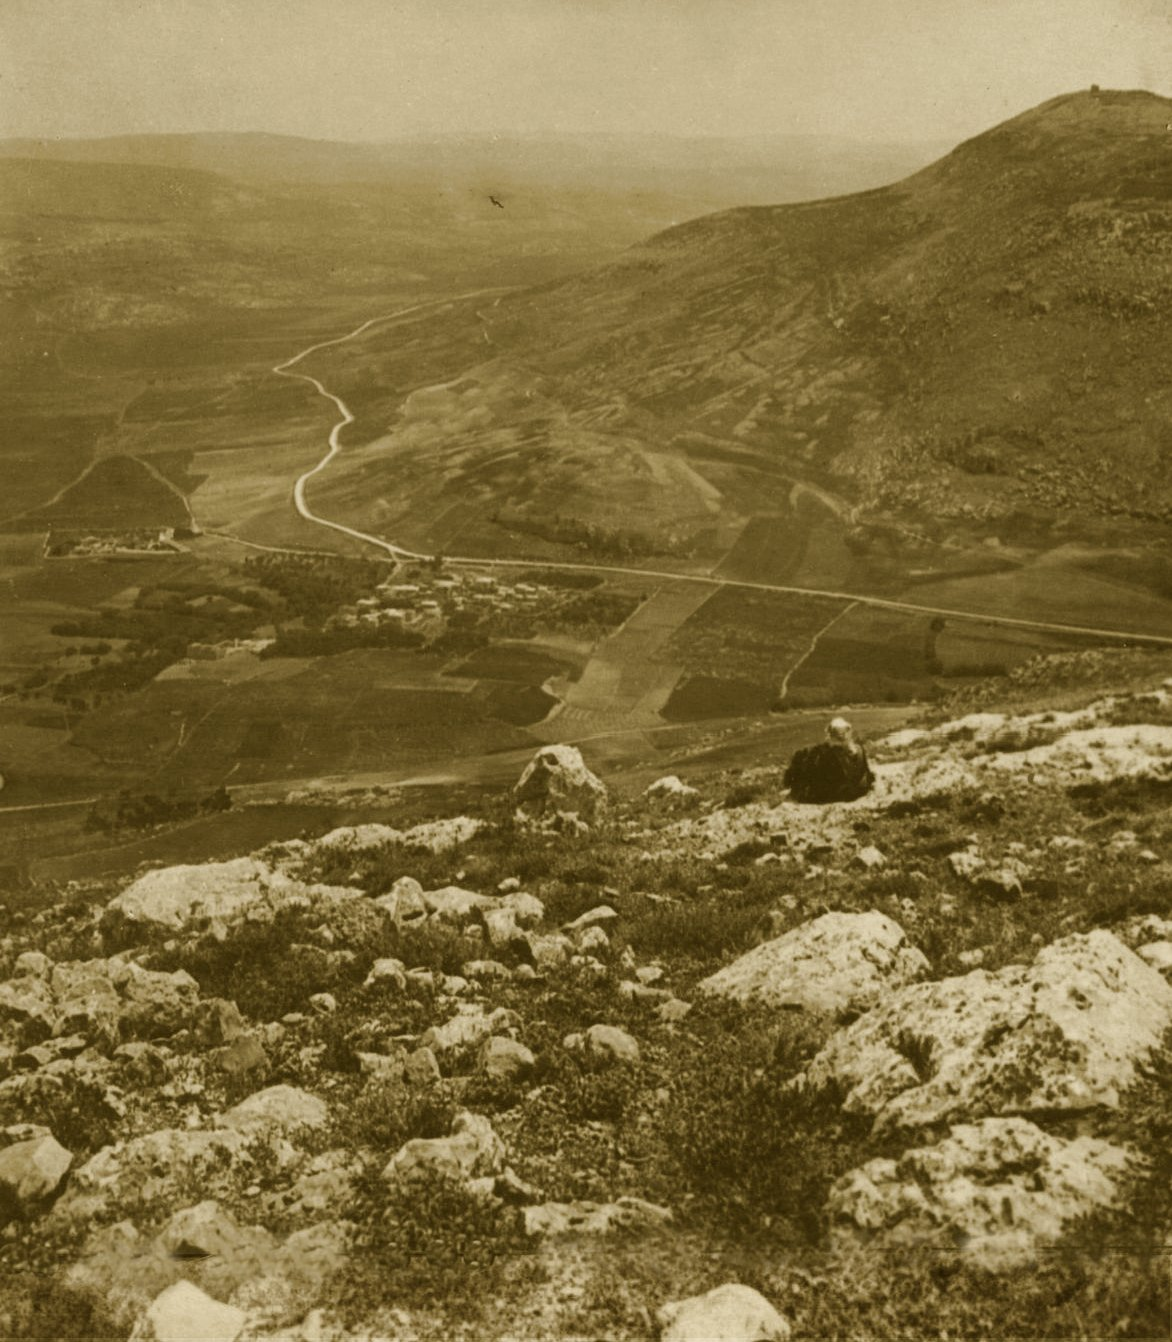 Nablus - نابلس : NABLUS - Late 19th, early 20th c. 87 - Looking south from Ebal, overlooking the Barley fields in the valley of Nablus